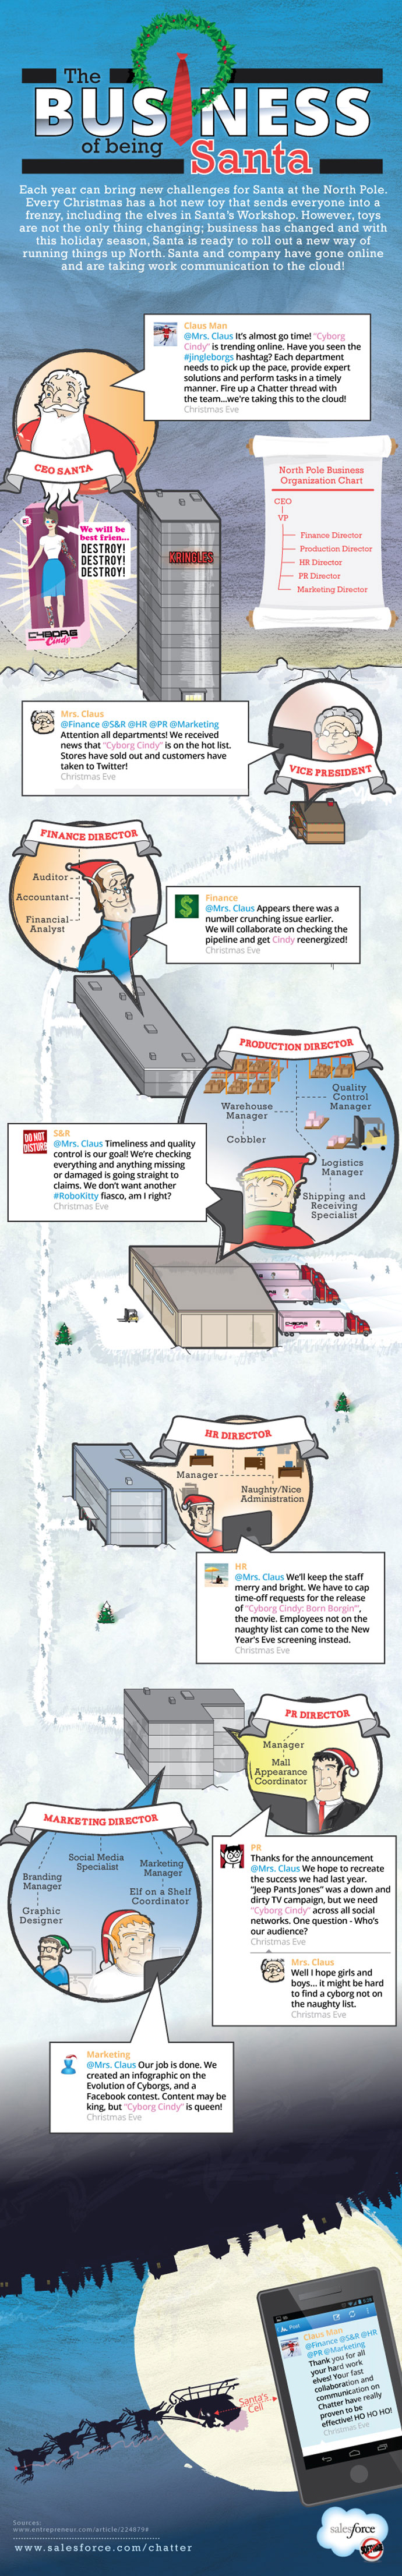 Team Santa takes Collaboration Software to the Clouds [Infographic]